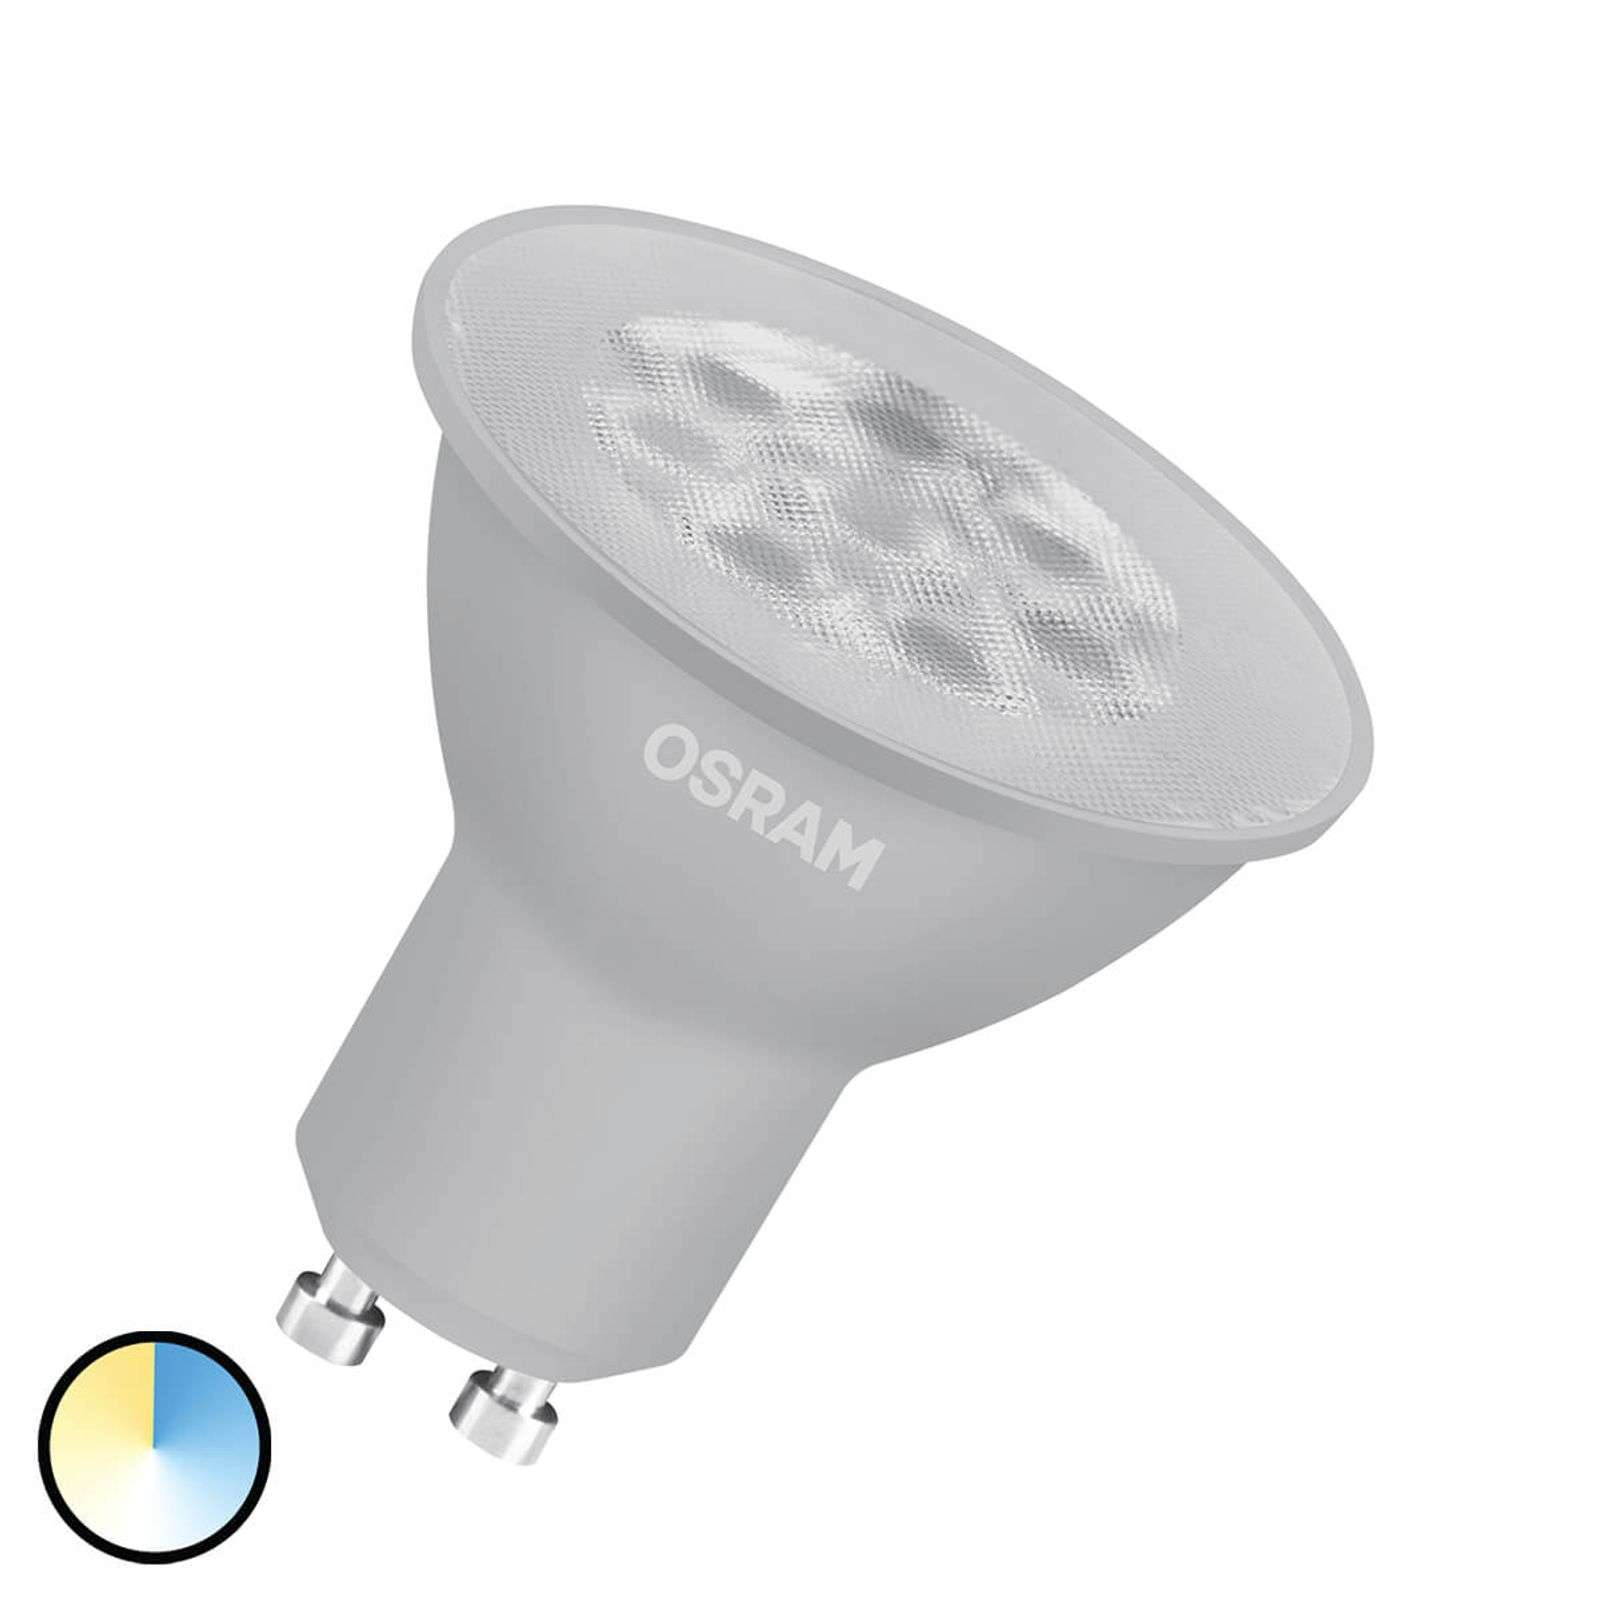 Lampadina LED a riflettore 36° Active&Relax GU105W